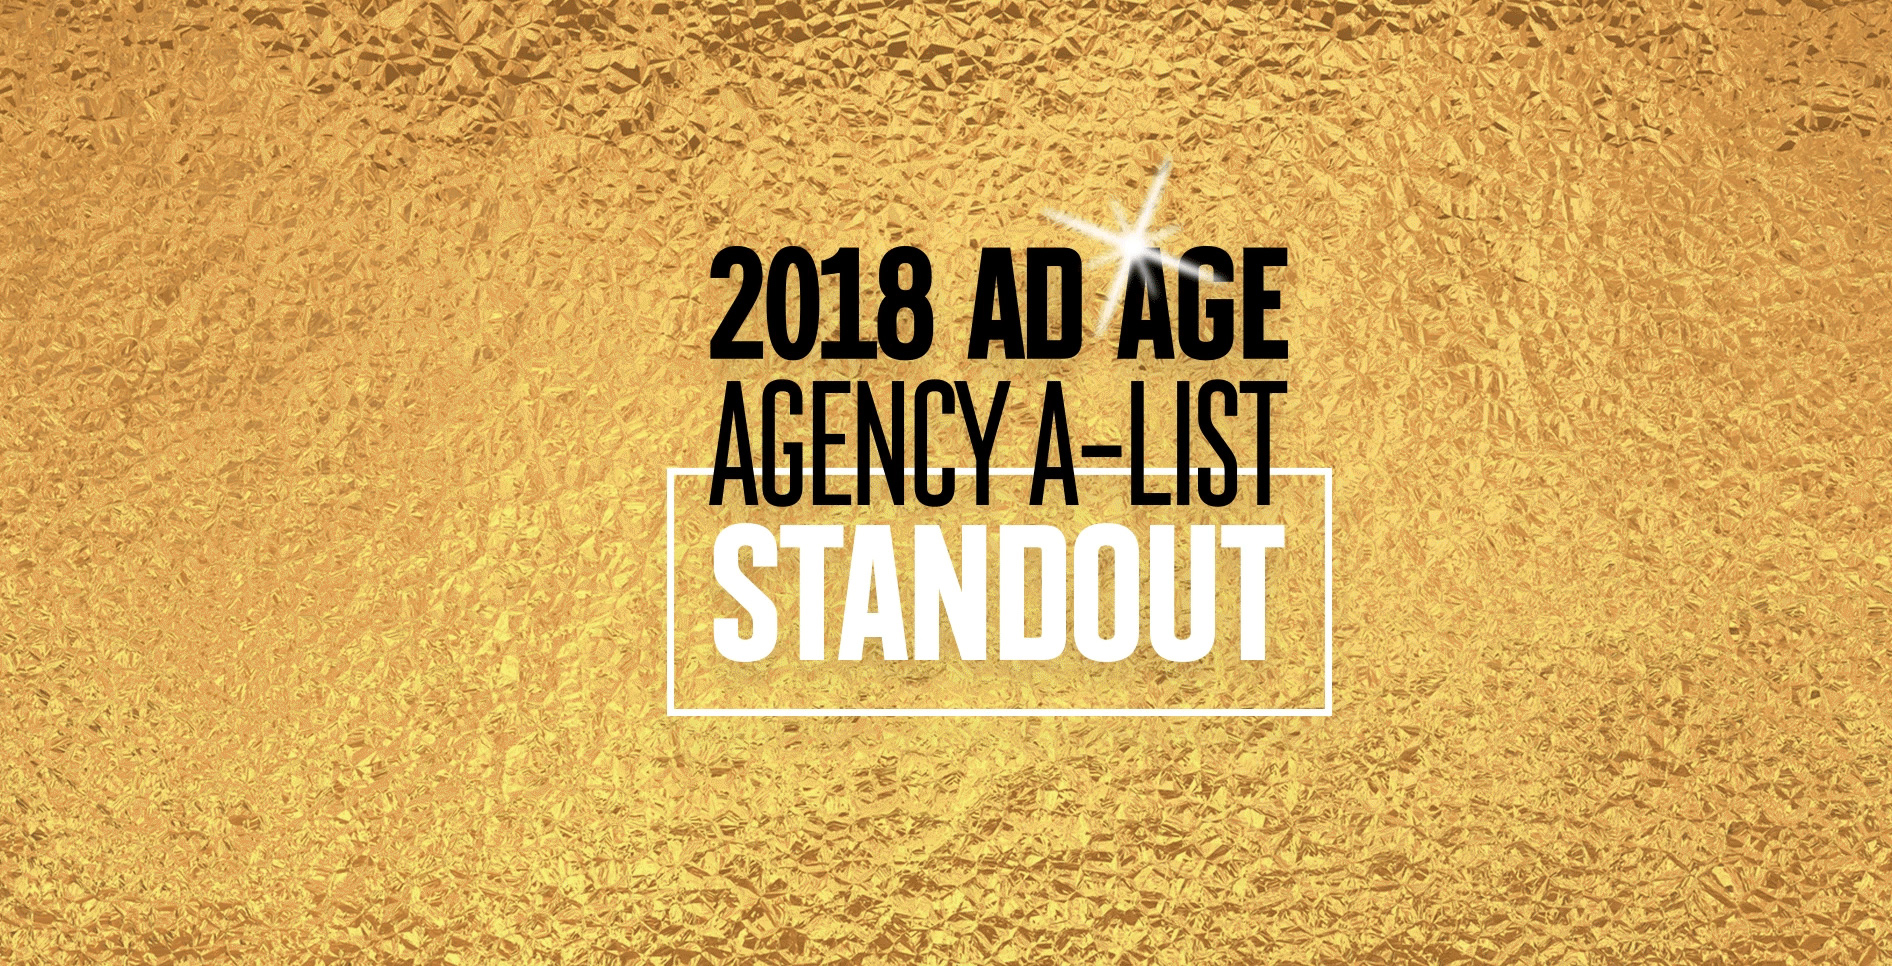 Weber Shandwick Named to Ad Age's 2018 Agency A-List Standout List